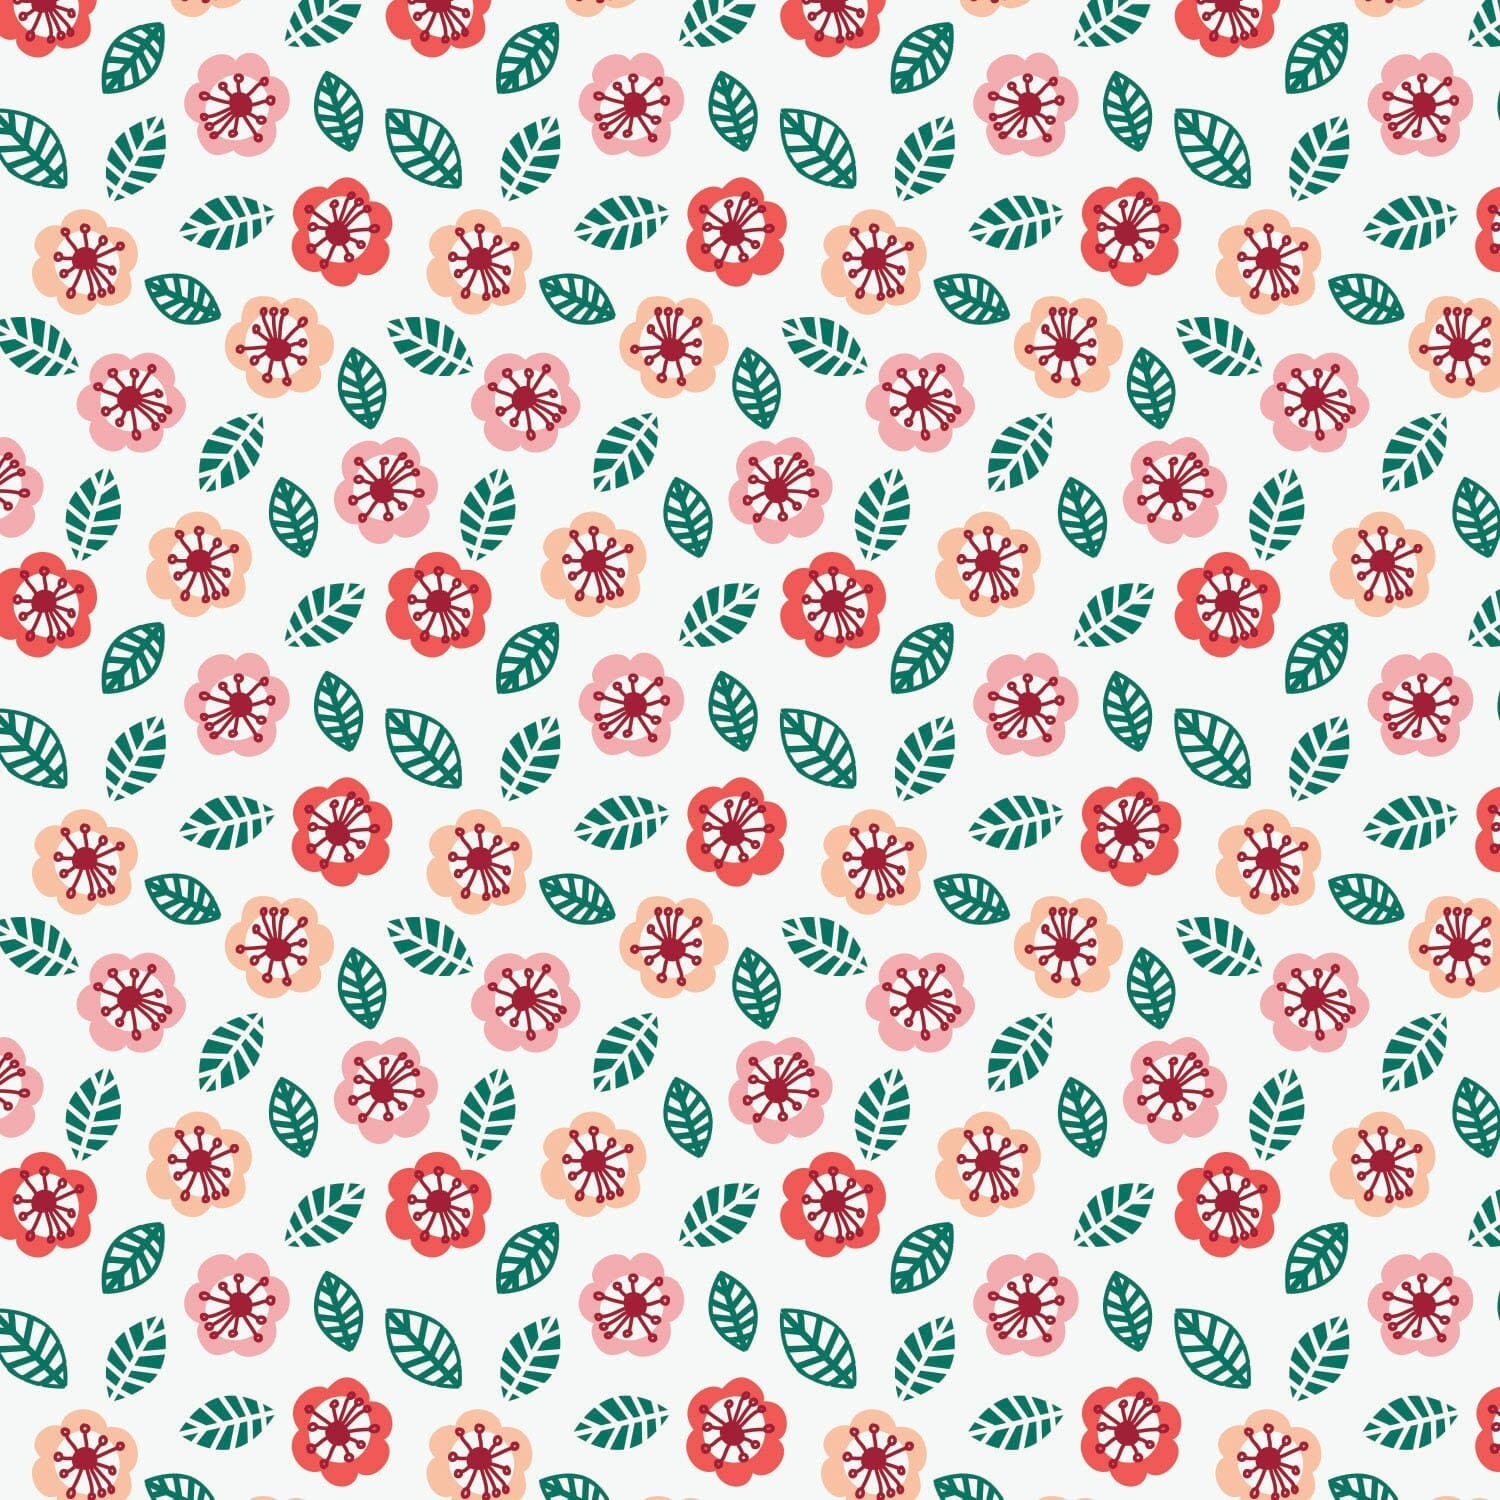 Jungly Childrens Fabric Floral White